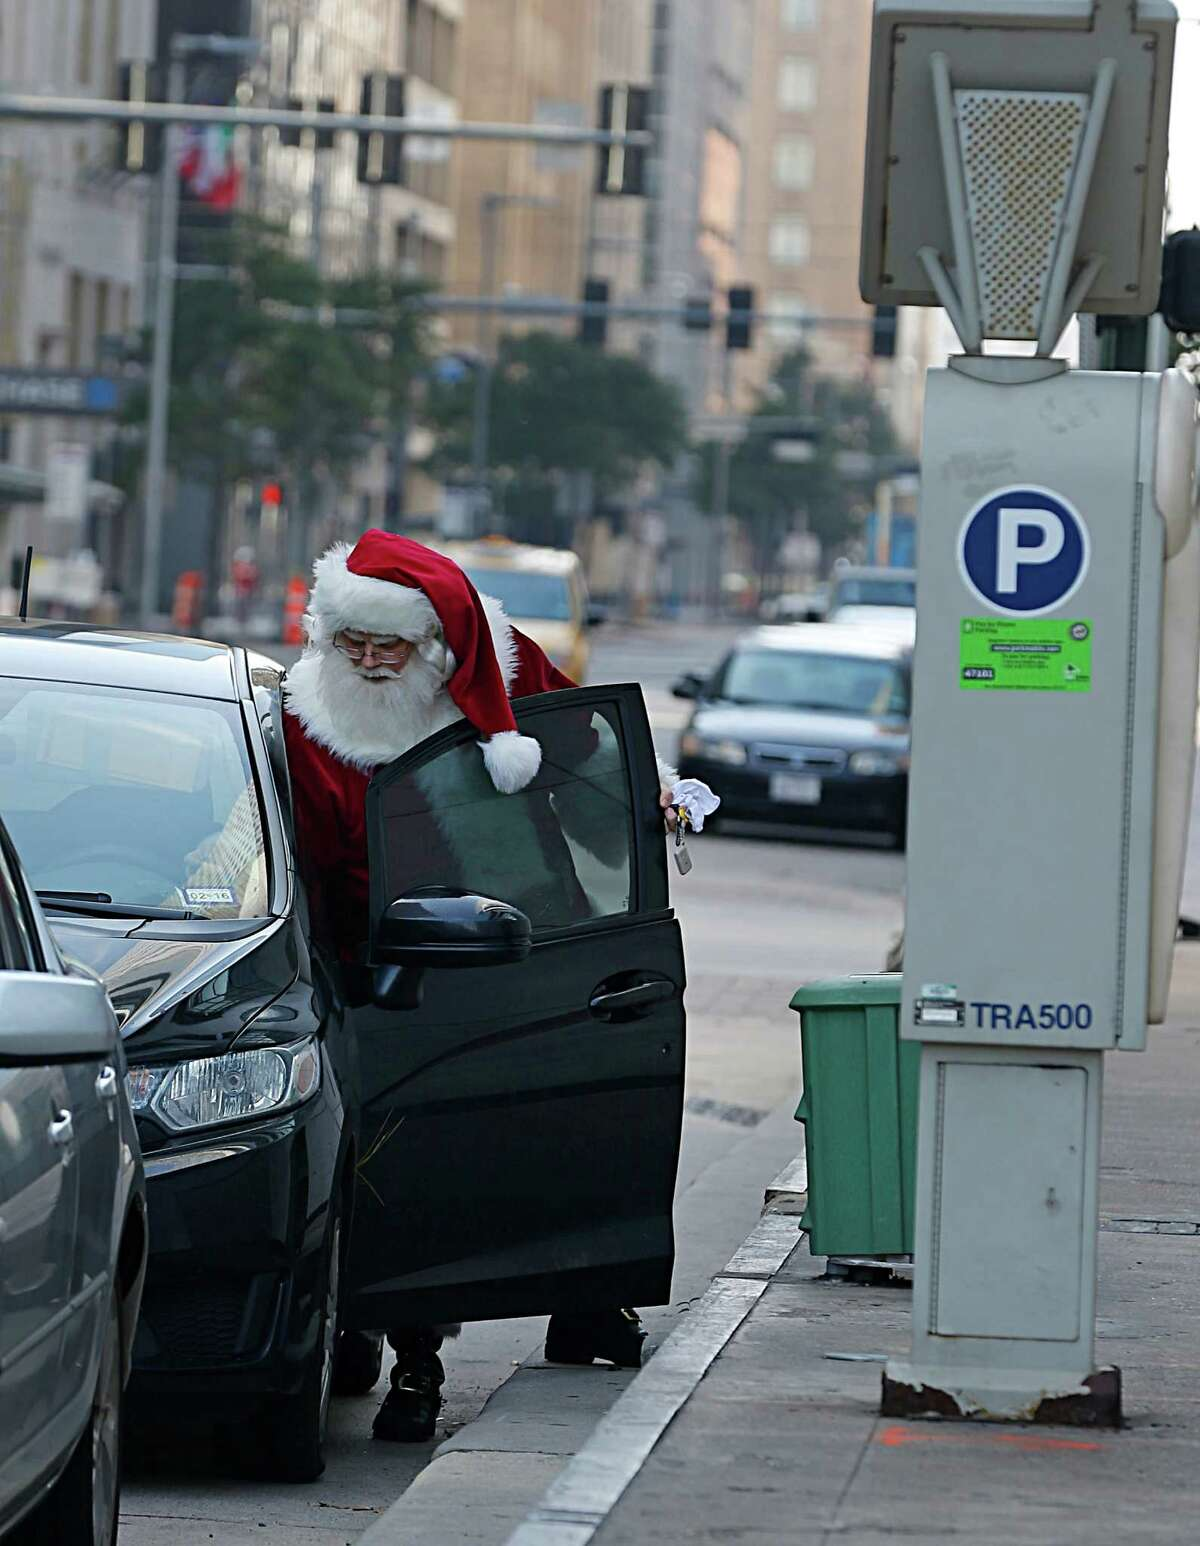 Santa Claus also known as Michael Weinberger palces a parking pay stub in his vehicle Thursday, Dec. 24, 2015, in Houston.